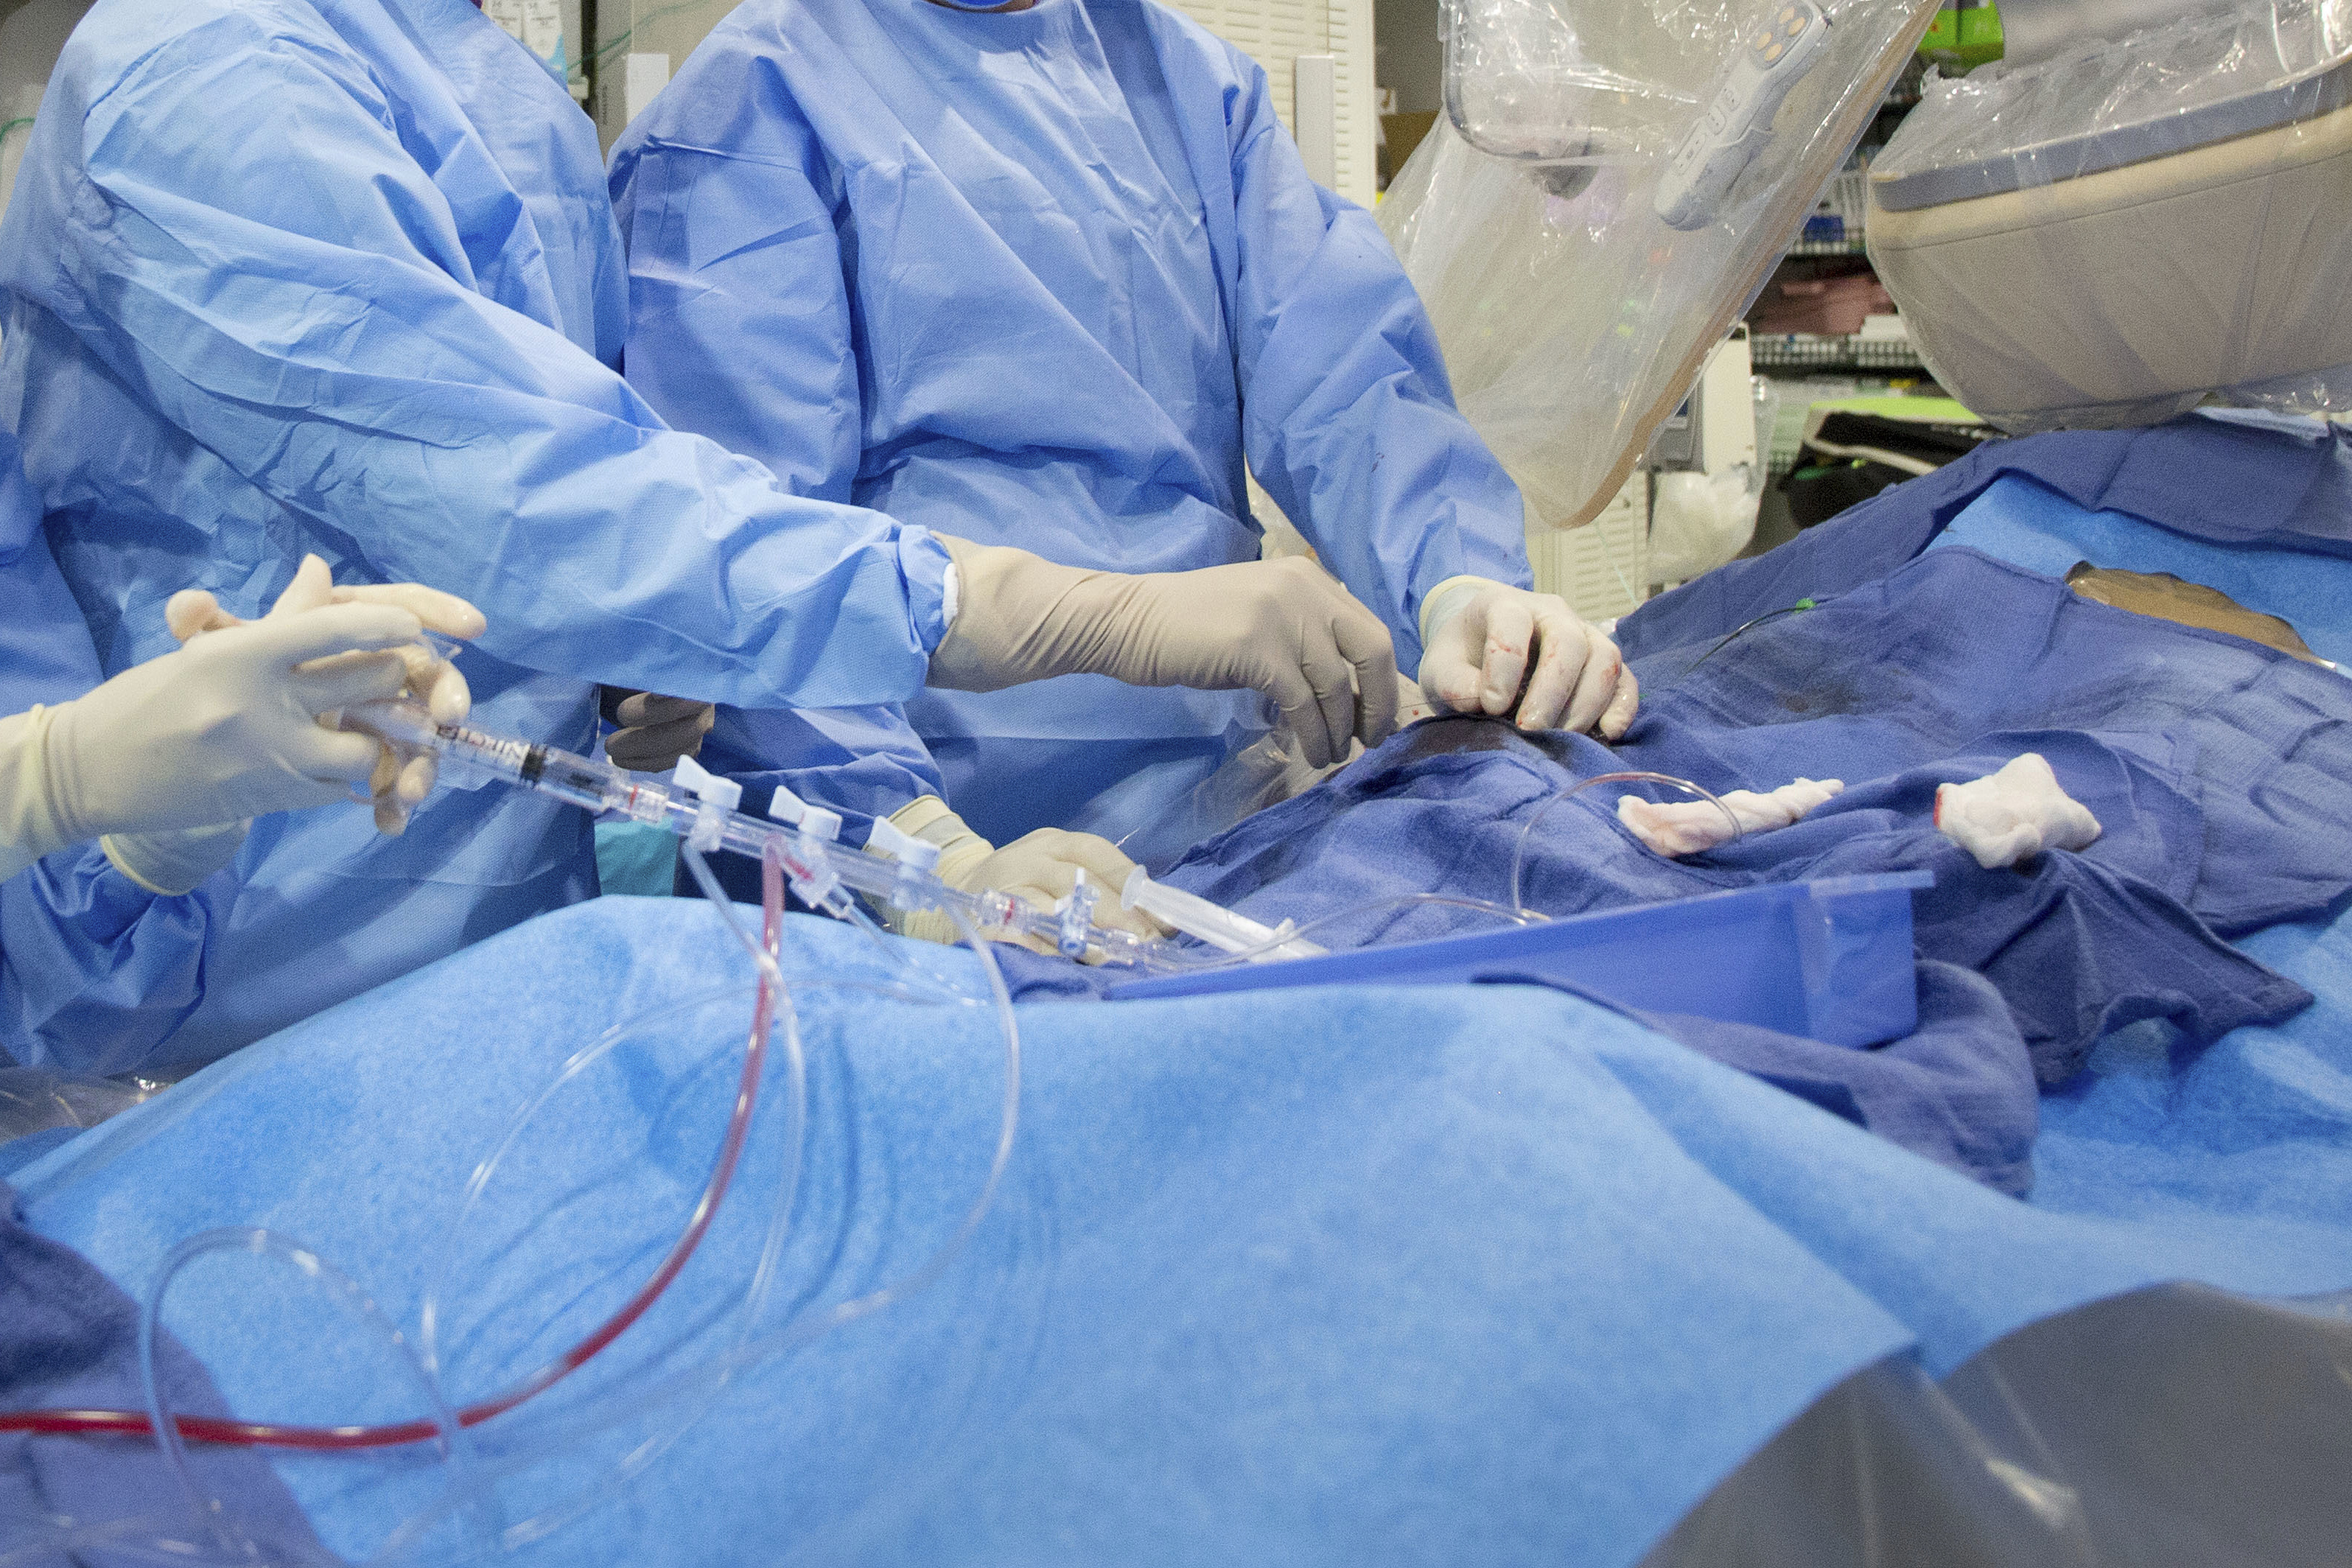 Surgeons perform a non-emergency angioplasty at Mount Sinai Hospital in New York. Through a blood vessel in the groin, a tube is guided to a blockage in the heart.